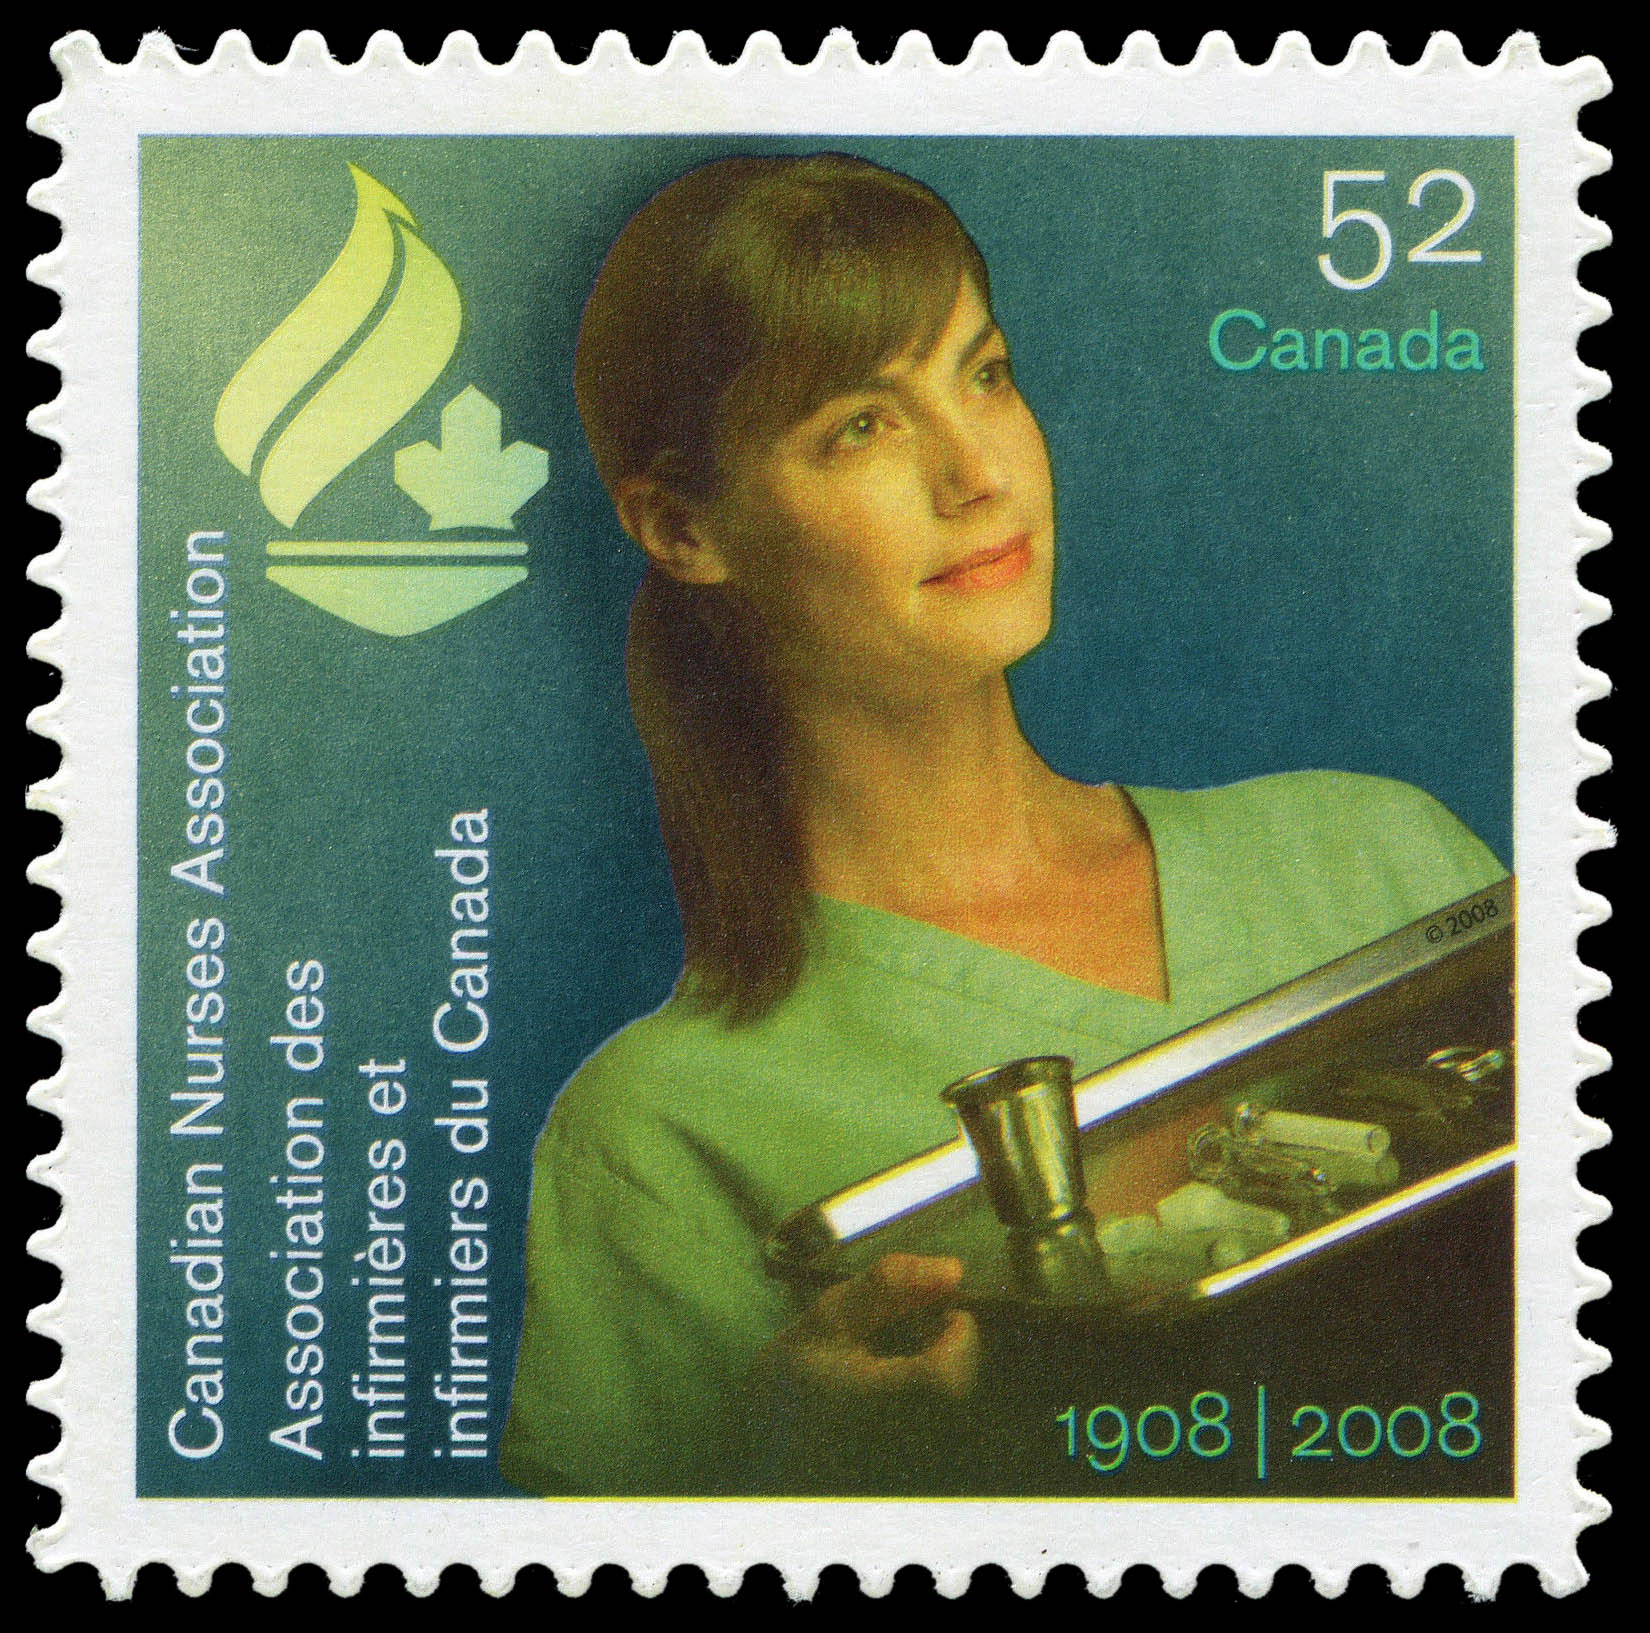 Canadian Nurses Association - 1908-2008 Canada Postage Stamp